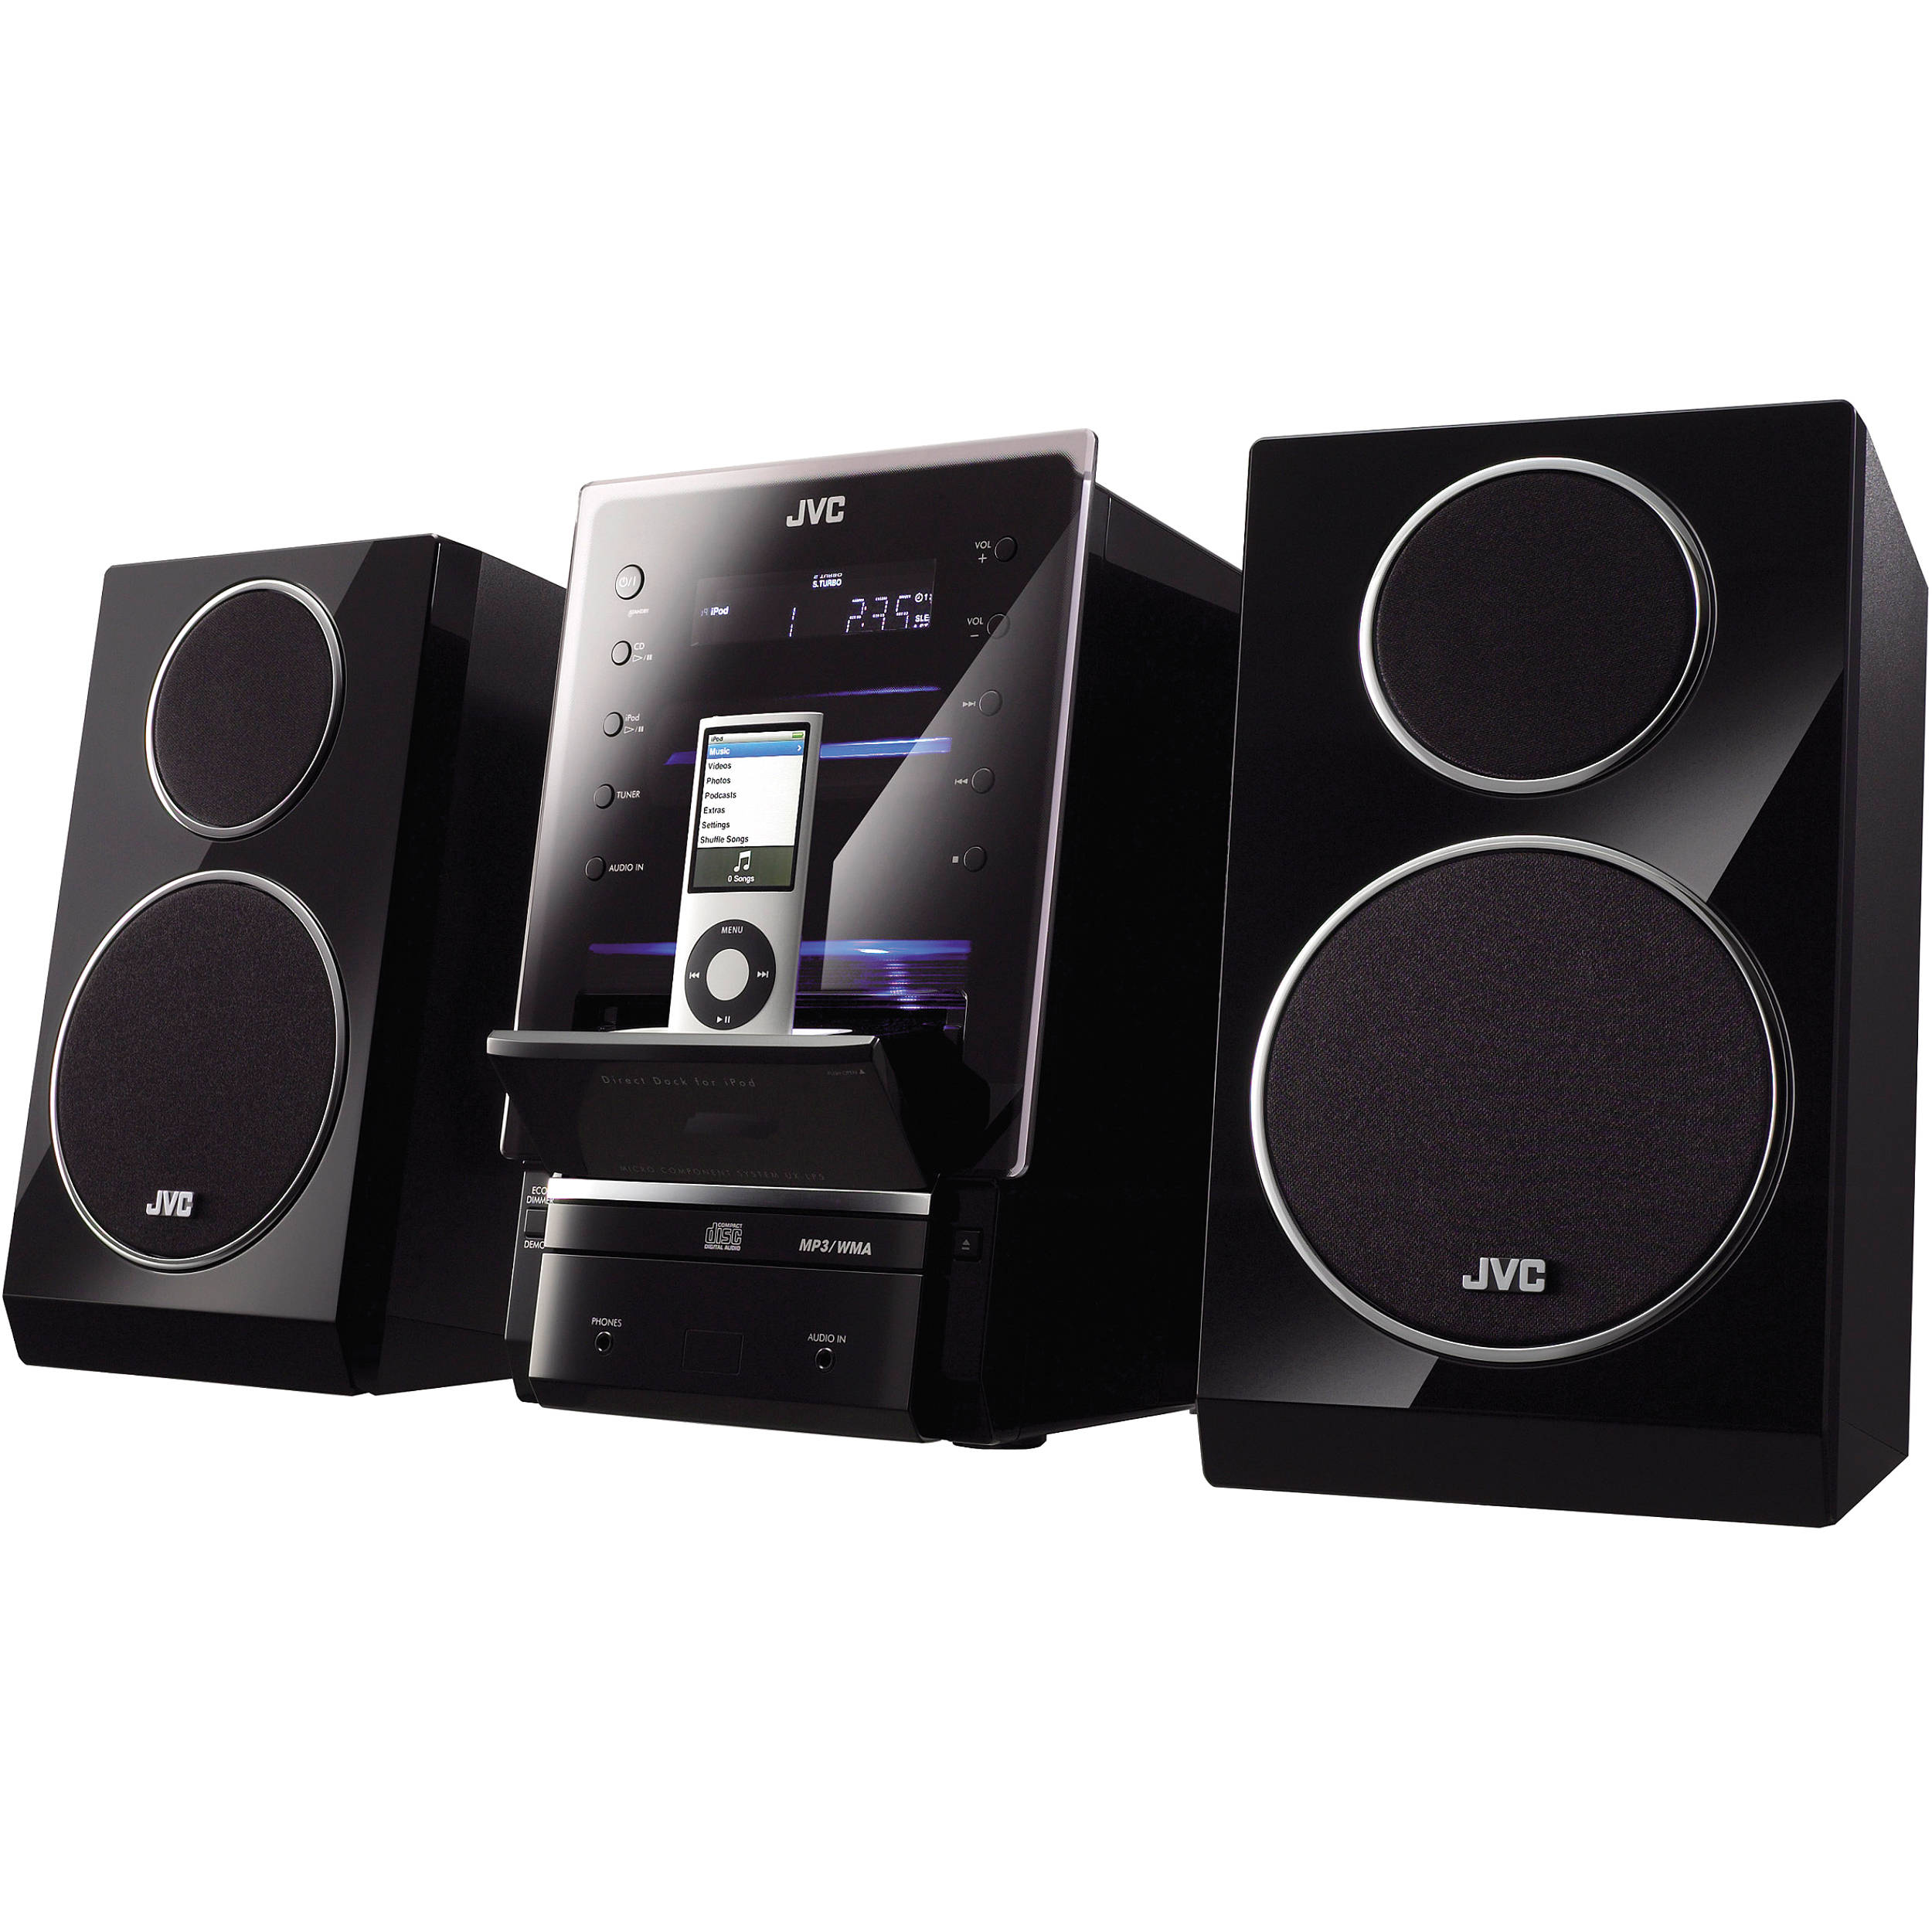 JVC UX-LP5 CD Micro Component System. iPod, iPad, or iPhone not included